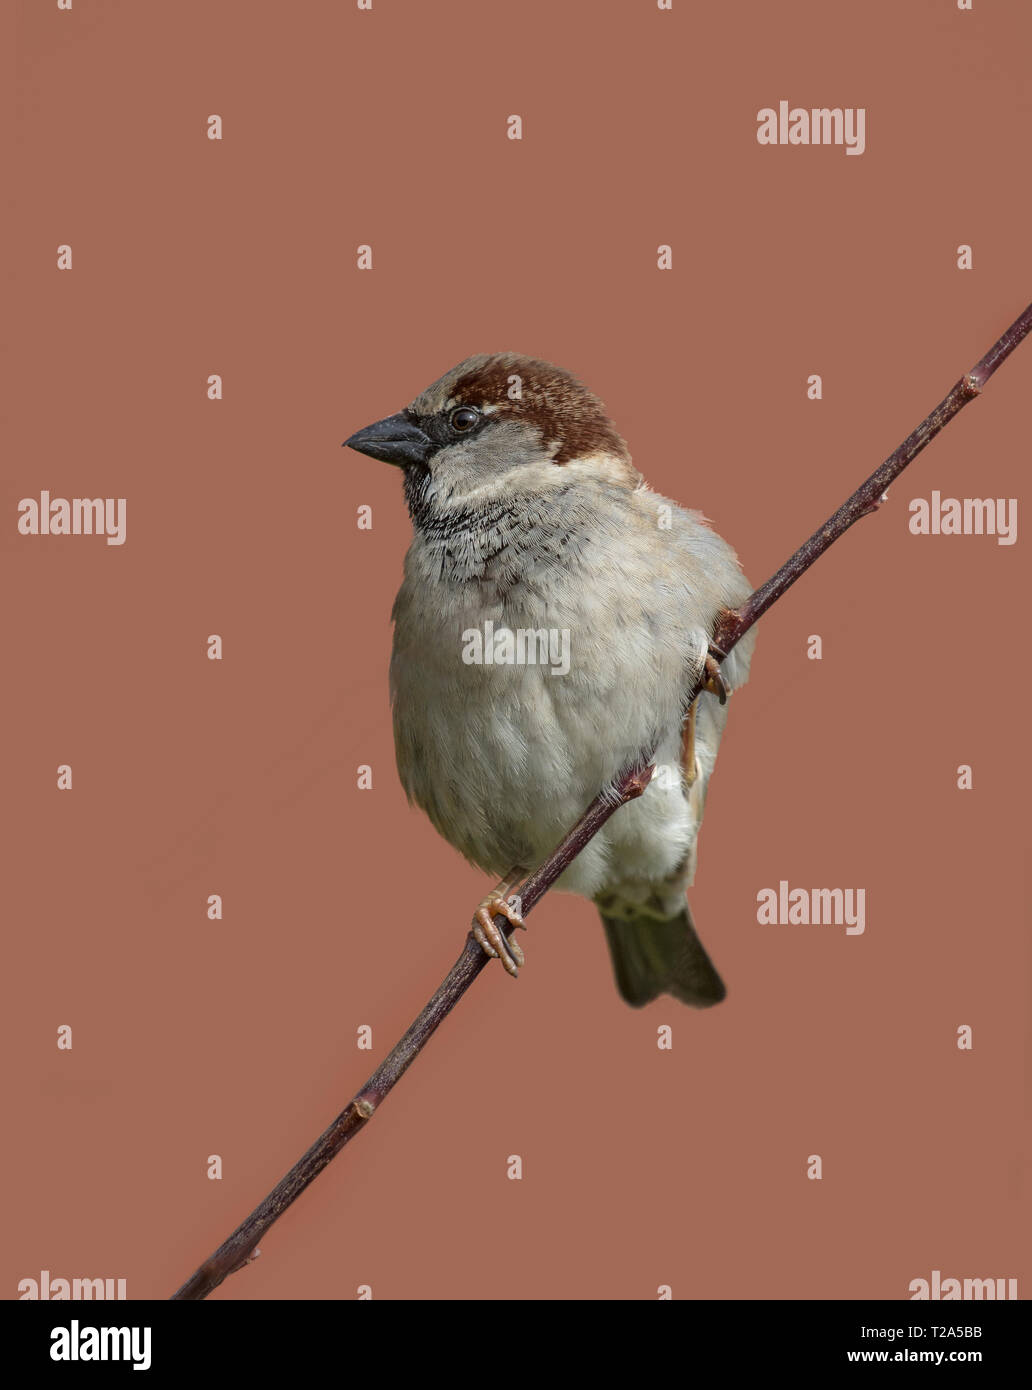 House Sparrow, passer domesticus, on wire, Lancashire, England, UK - Stock Image